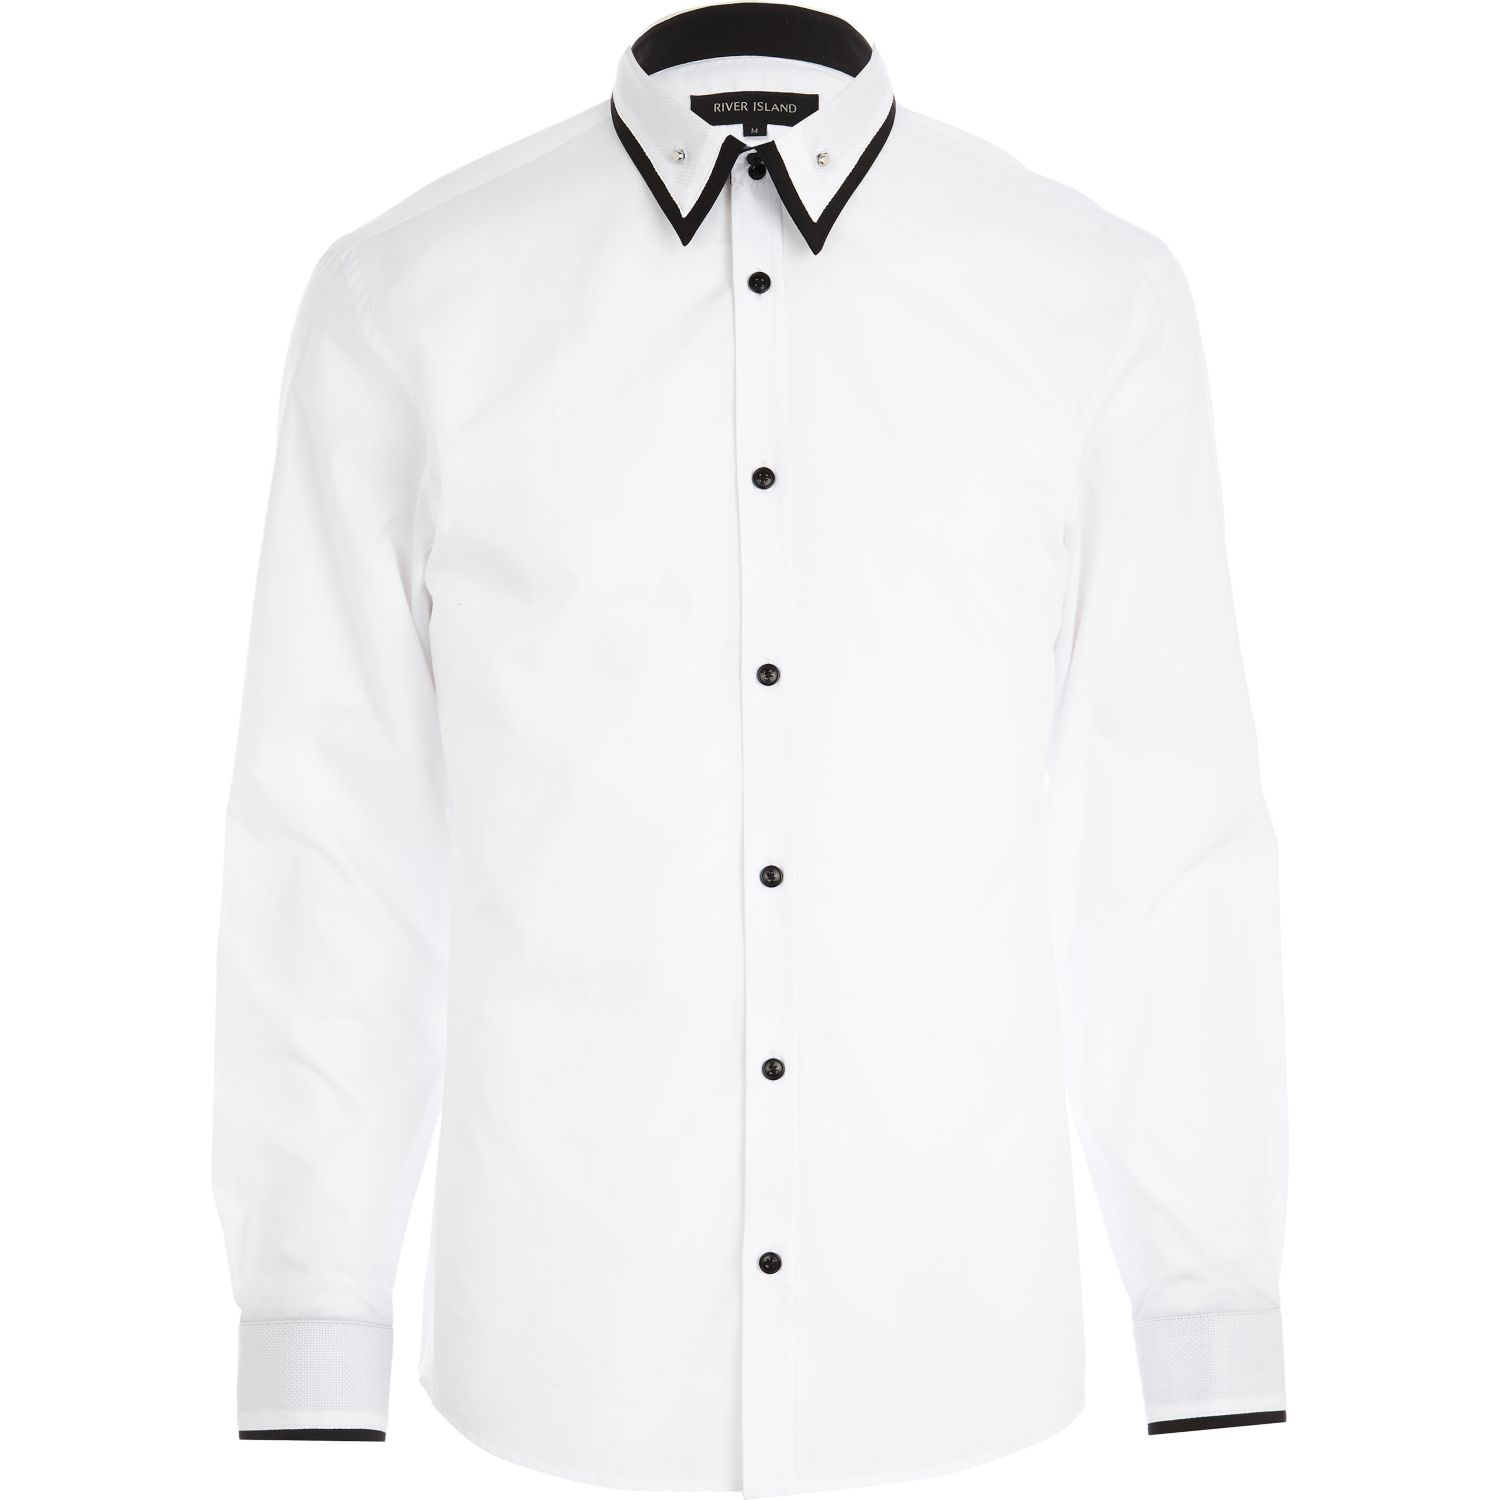 Black Collar White Shirt | Artee Shirt